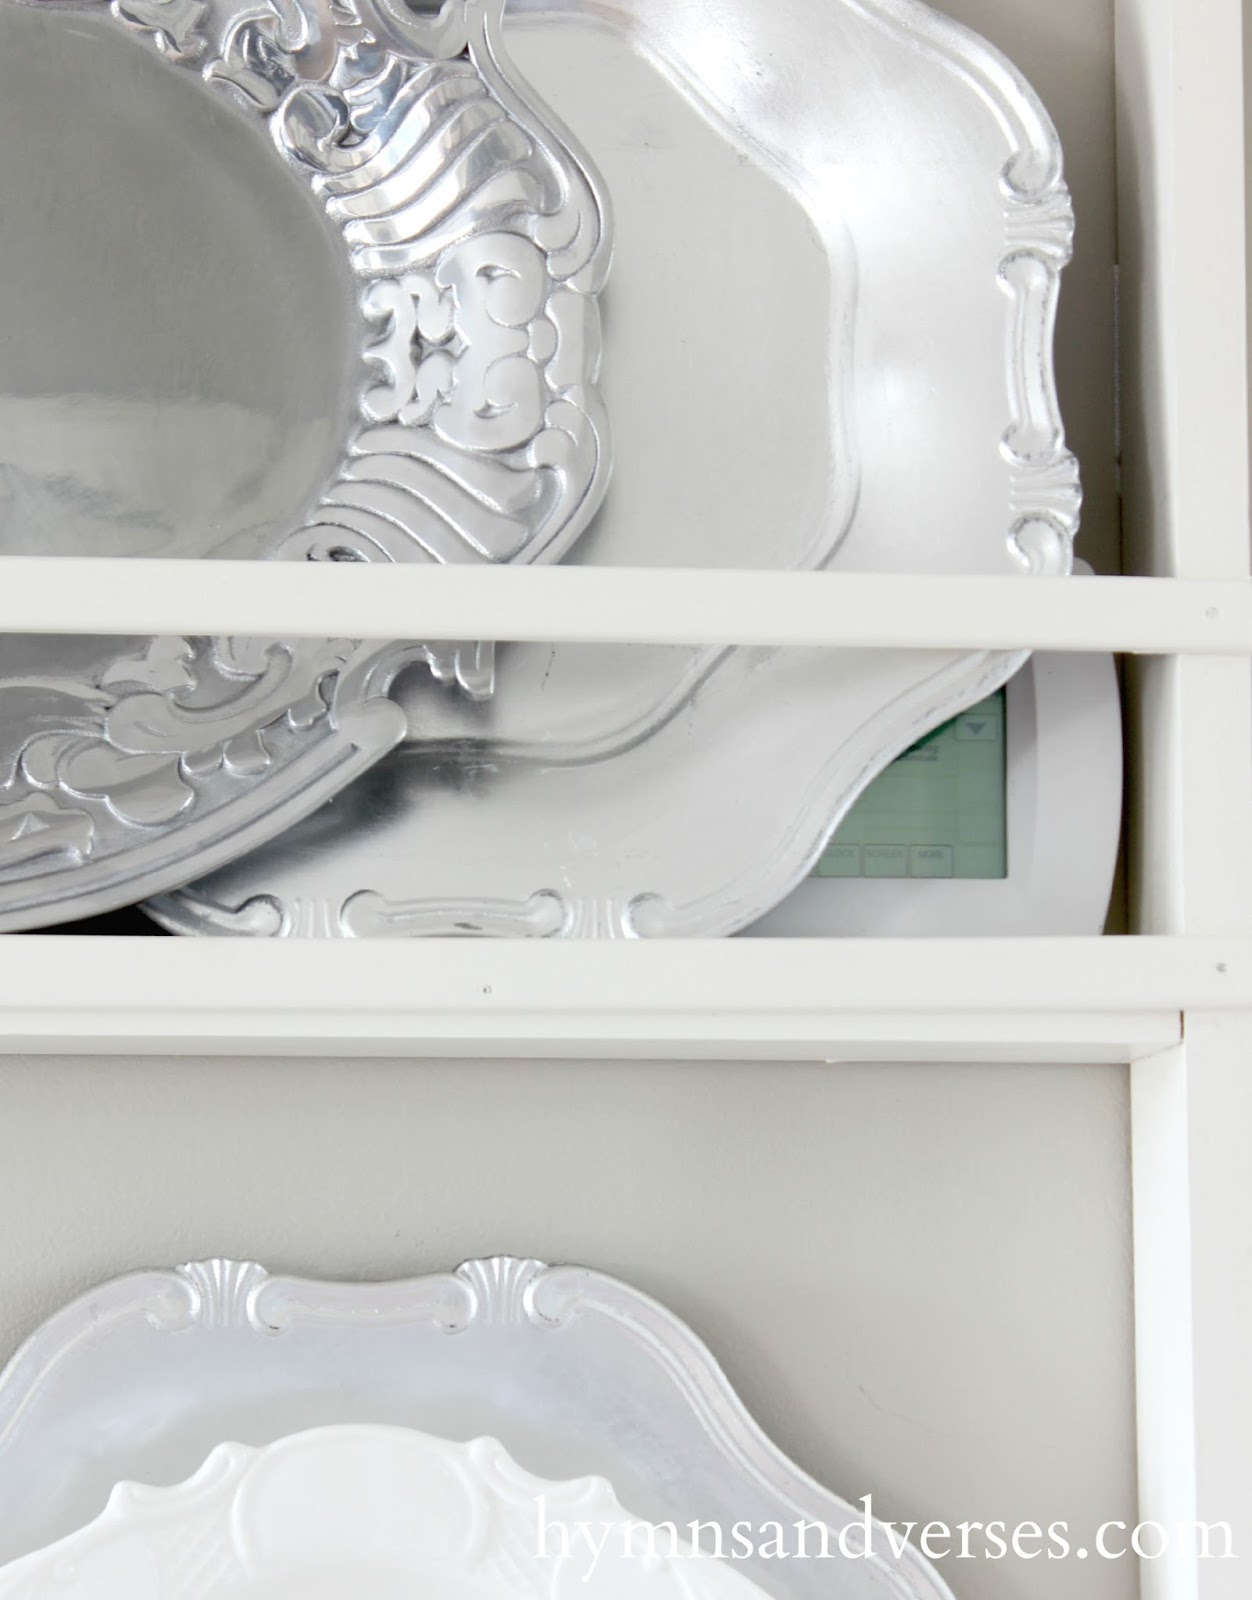 Plate Rack Close Up & Build Your Own DIY Plate Rack - Easy Plans - Hymns and Verses